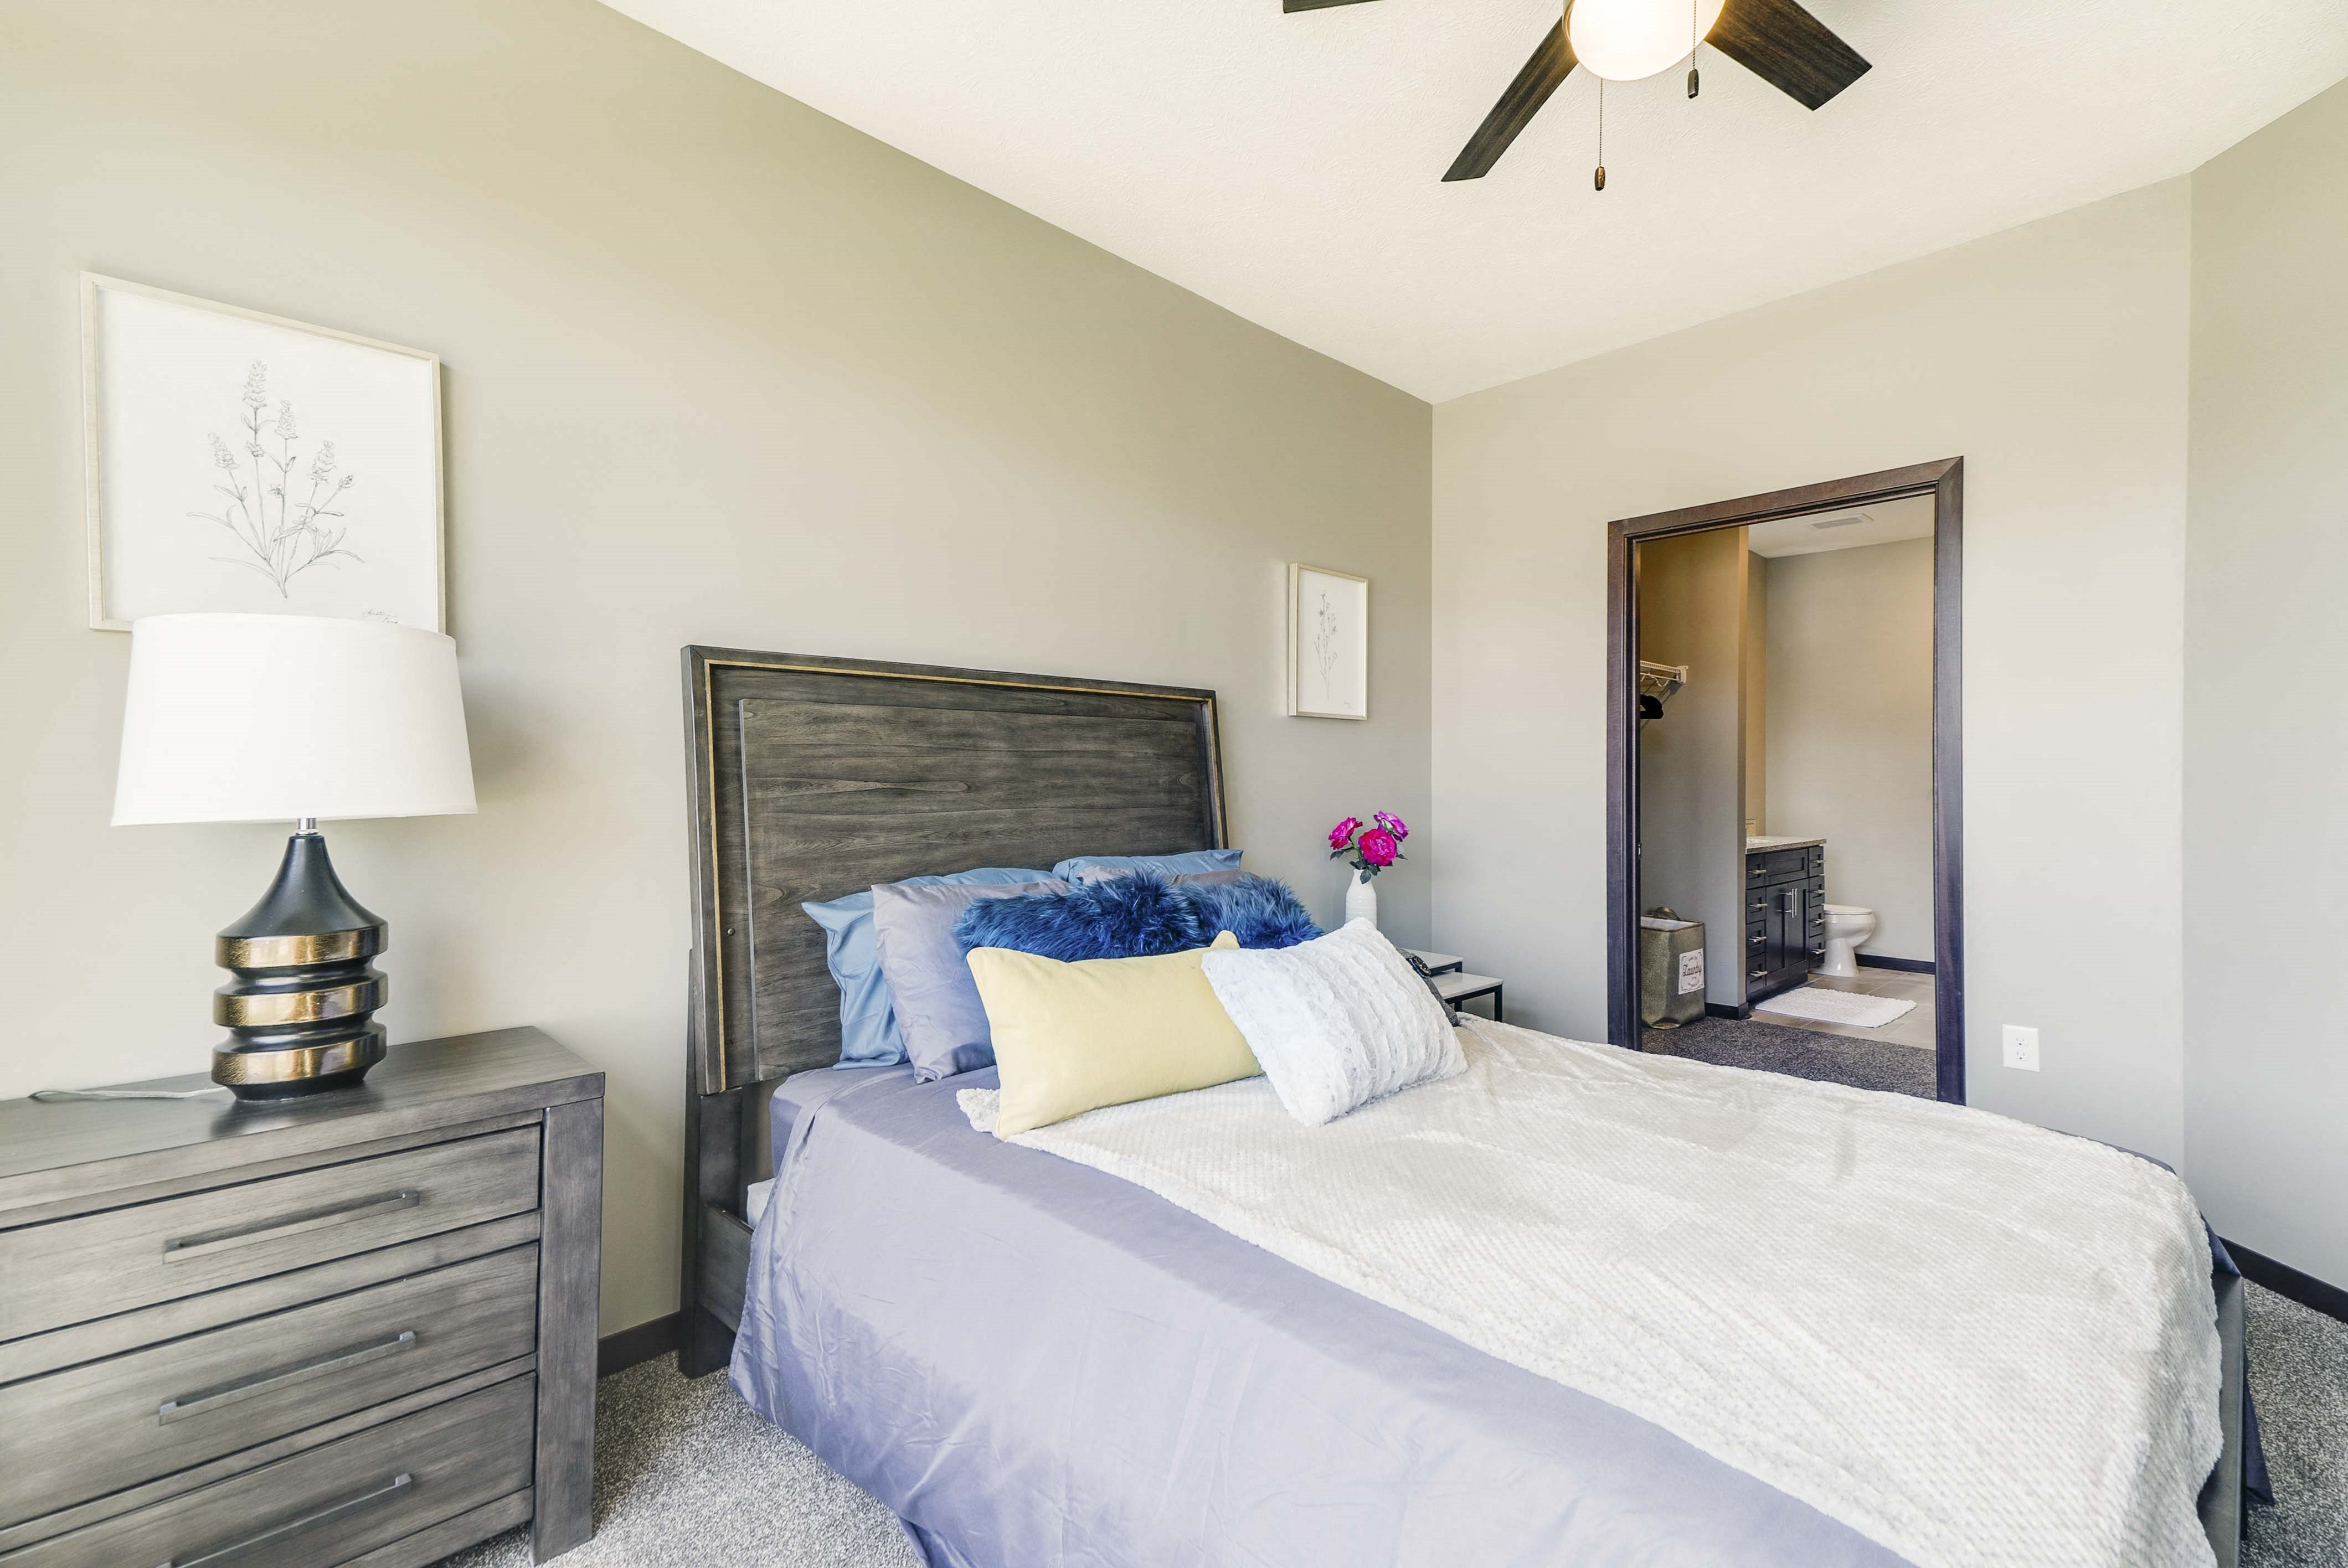 Large bedroom with attached bathroom with shower and granite countertops in 2 bedroom apartment for rent at 360 at Jordan West best new apartments West Des Moines IA 50266